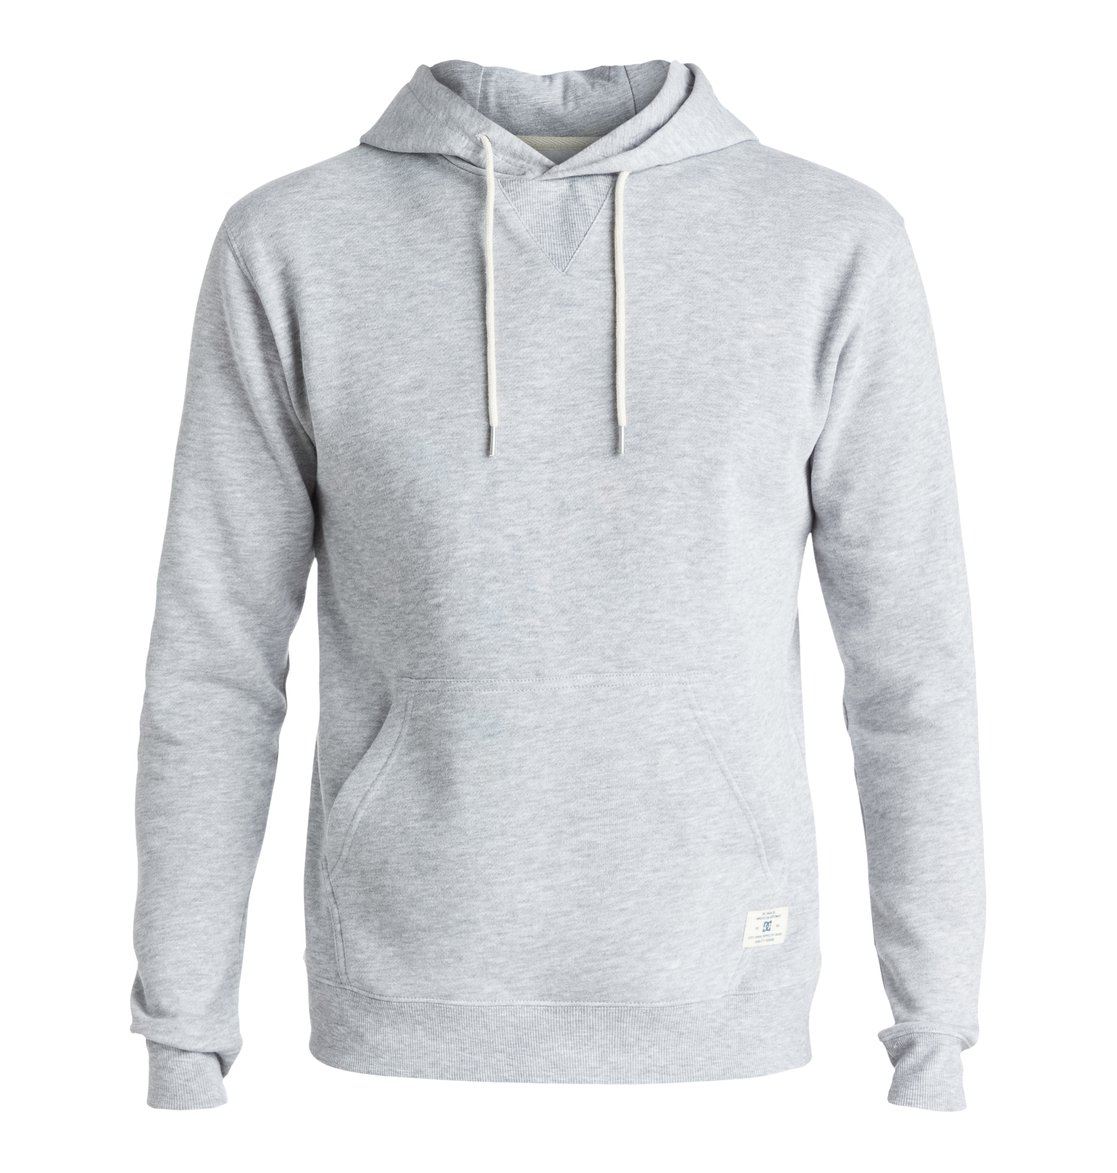 Stylish Men's Hoodies At A Great Value. With a huge variety of prints, colors and patterns available, it'll be a breeze to find the right men's pullover hoodies to suit your tastes.